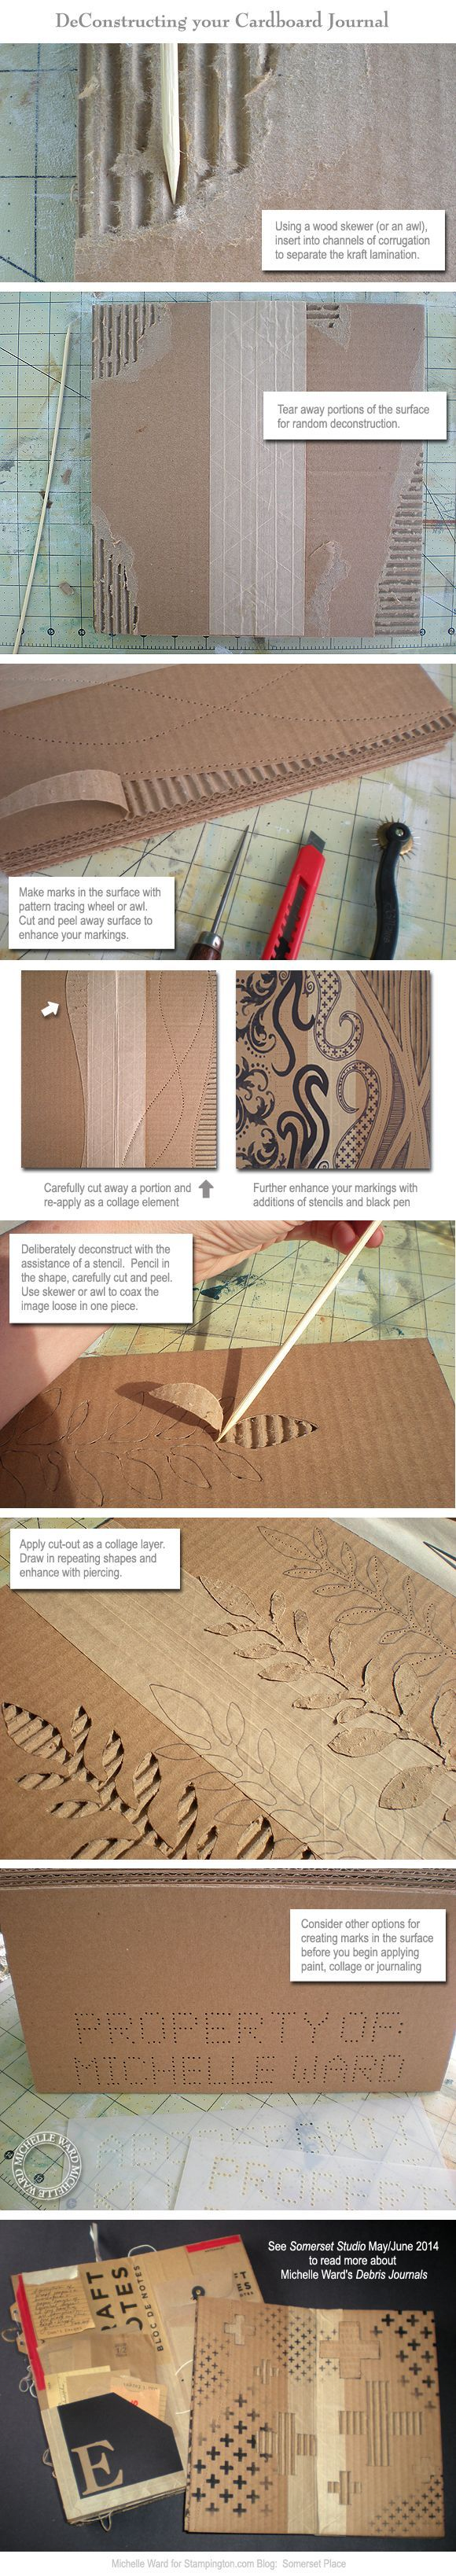 Upcycled Cardboard Journal with Guest Artist Michelle Ward